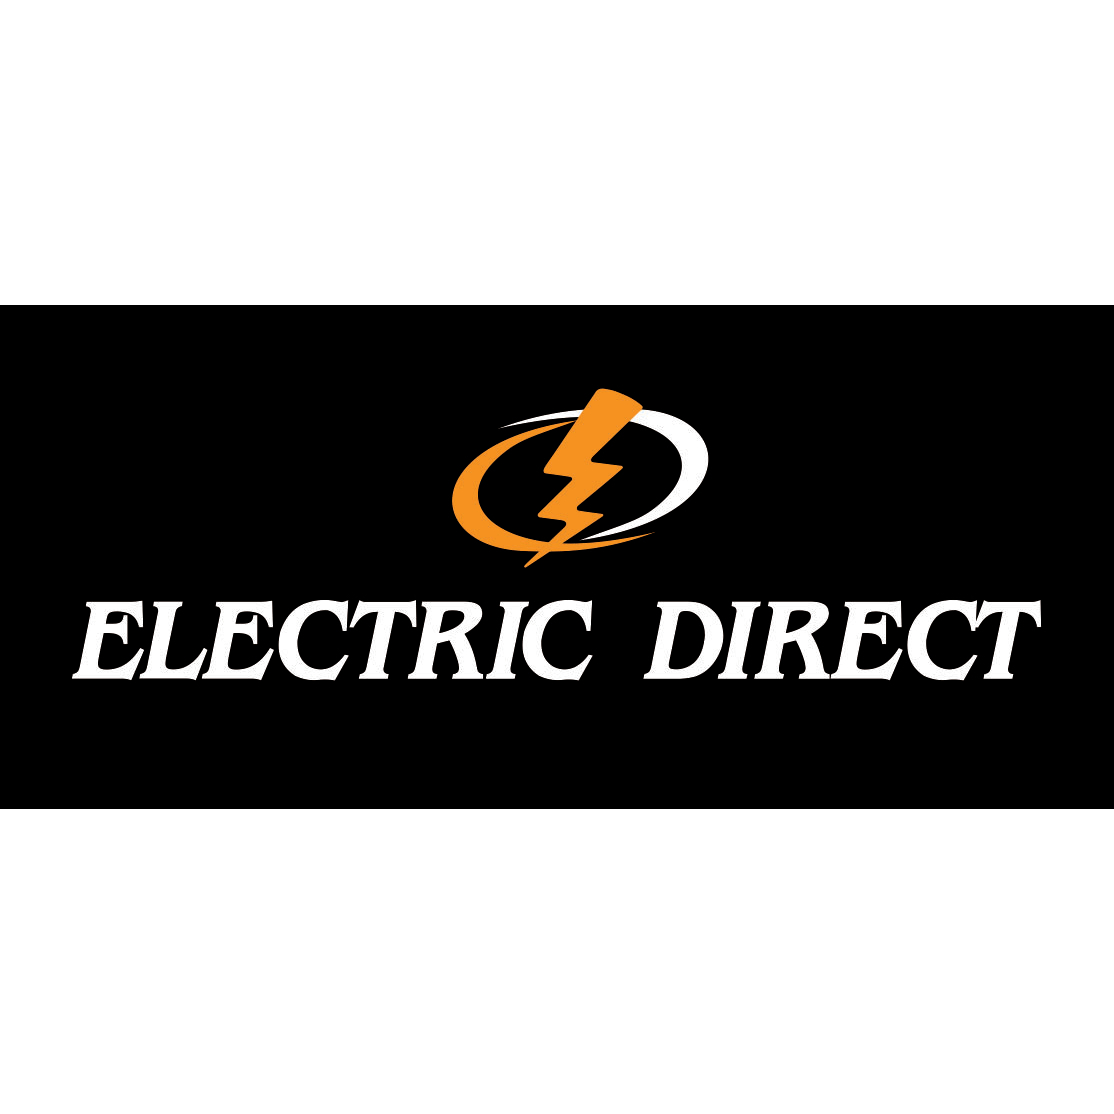 Electric Direct - Friendly and Affordable image 0